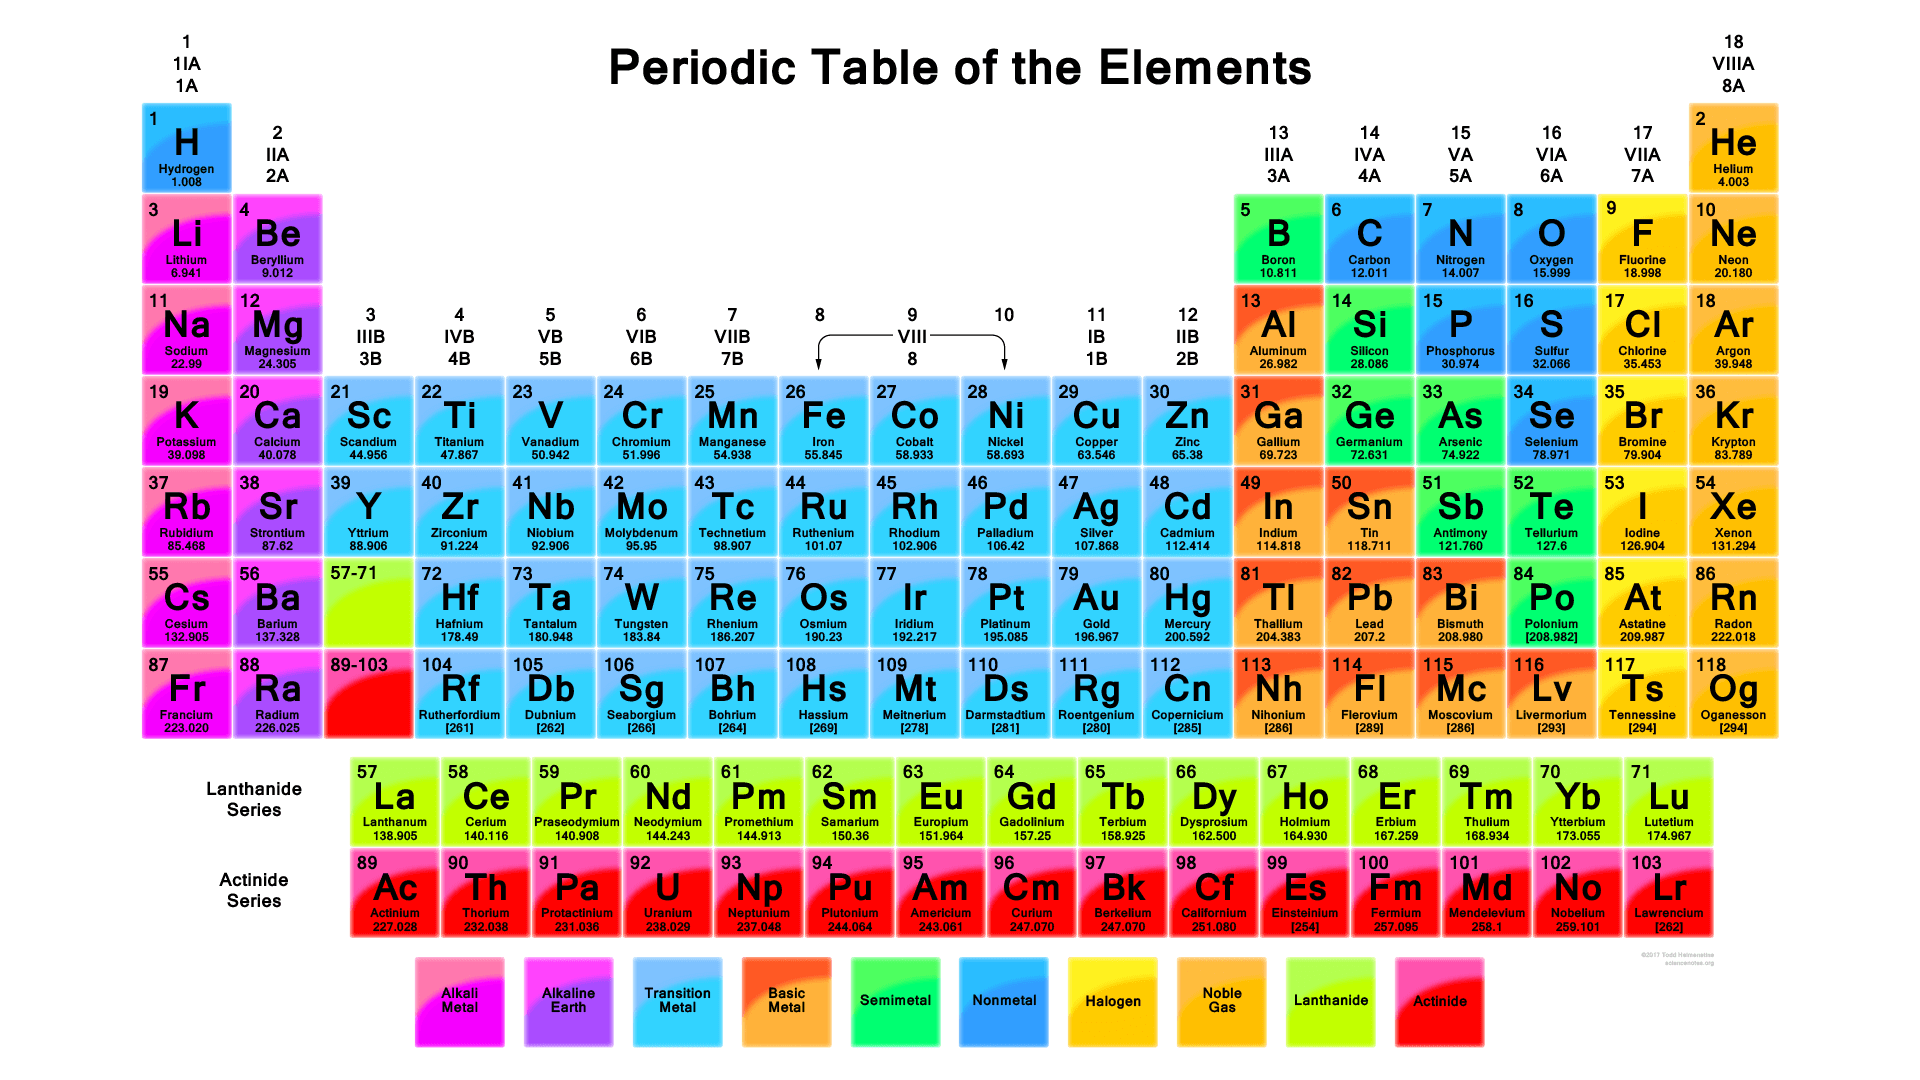 Periodic table pdf 2018 edition with 118 elements table on whitetable on black urtaz Image collections